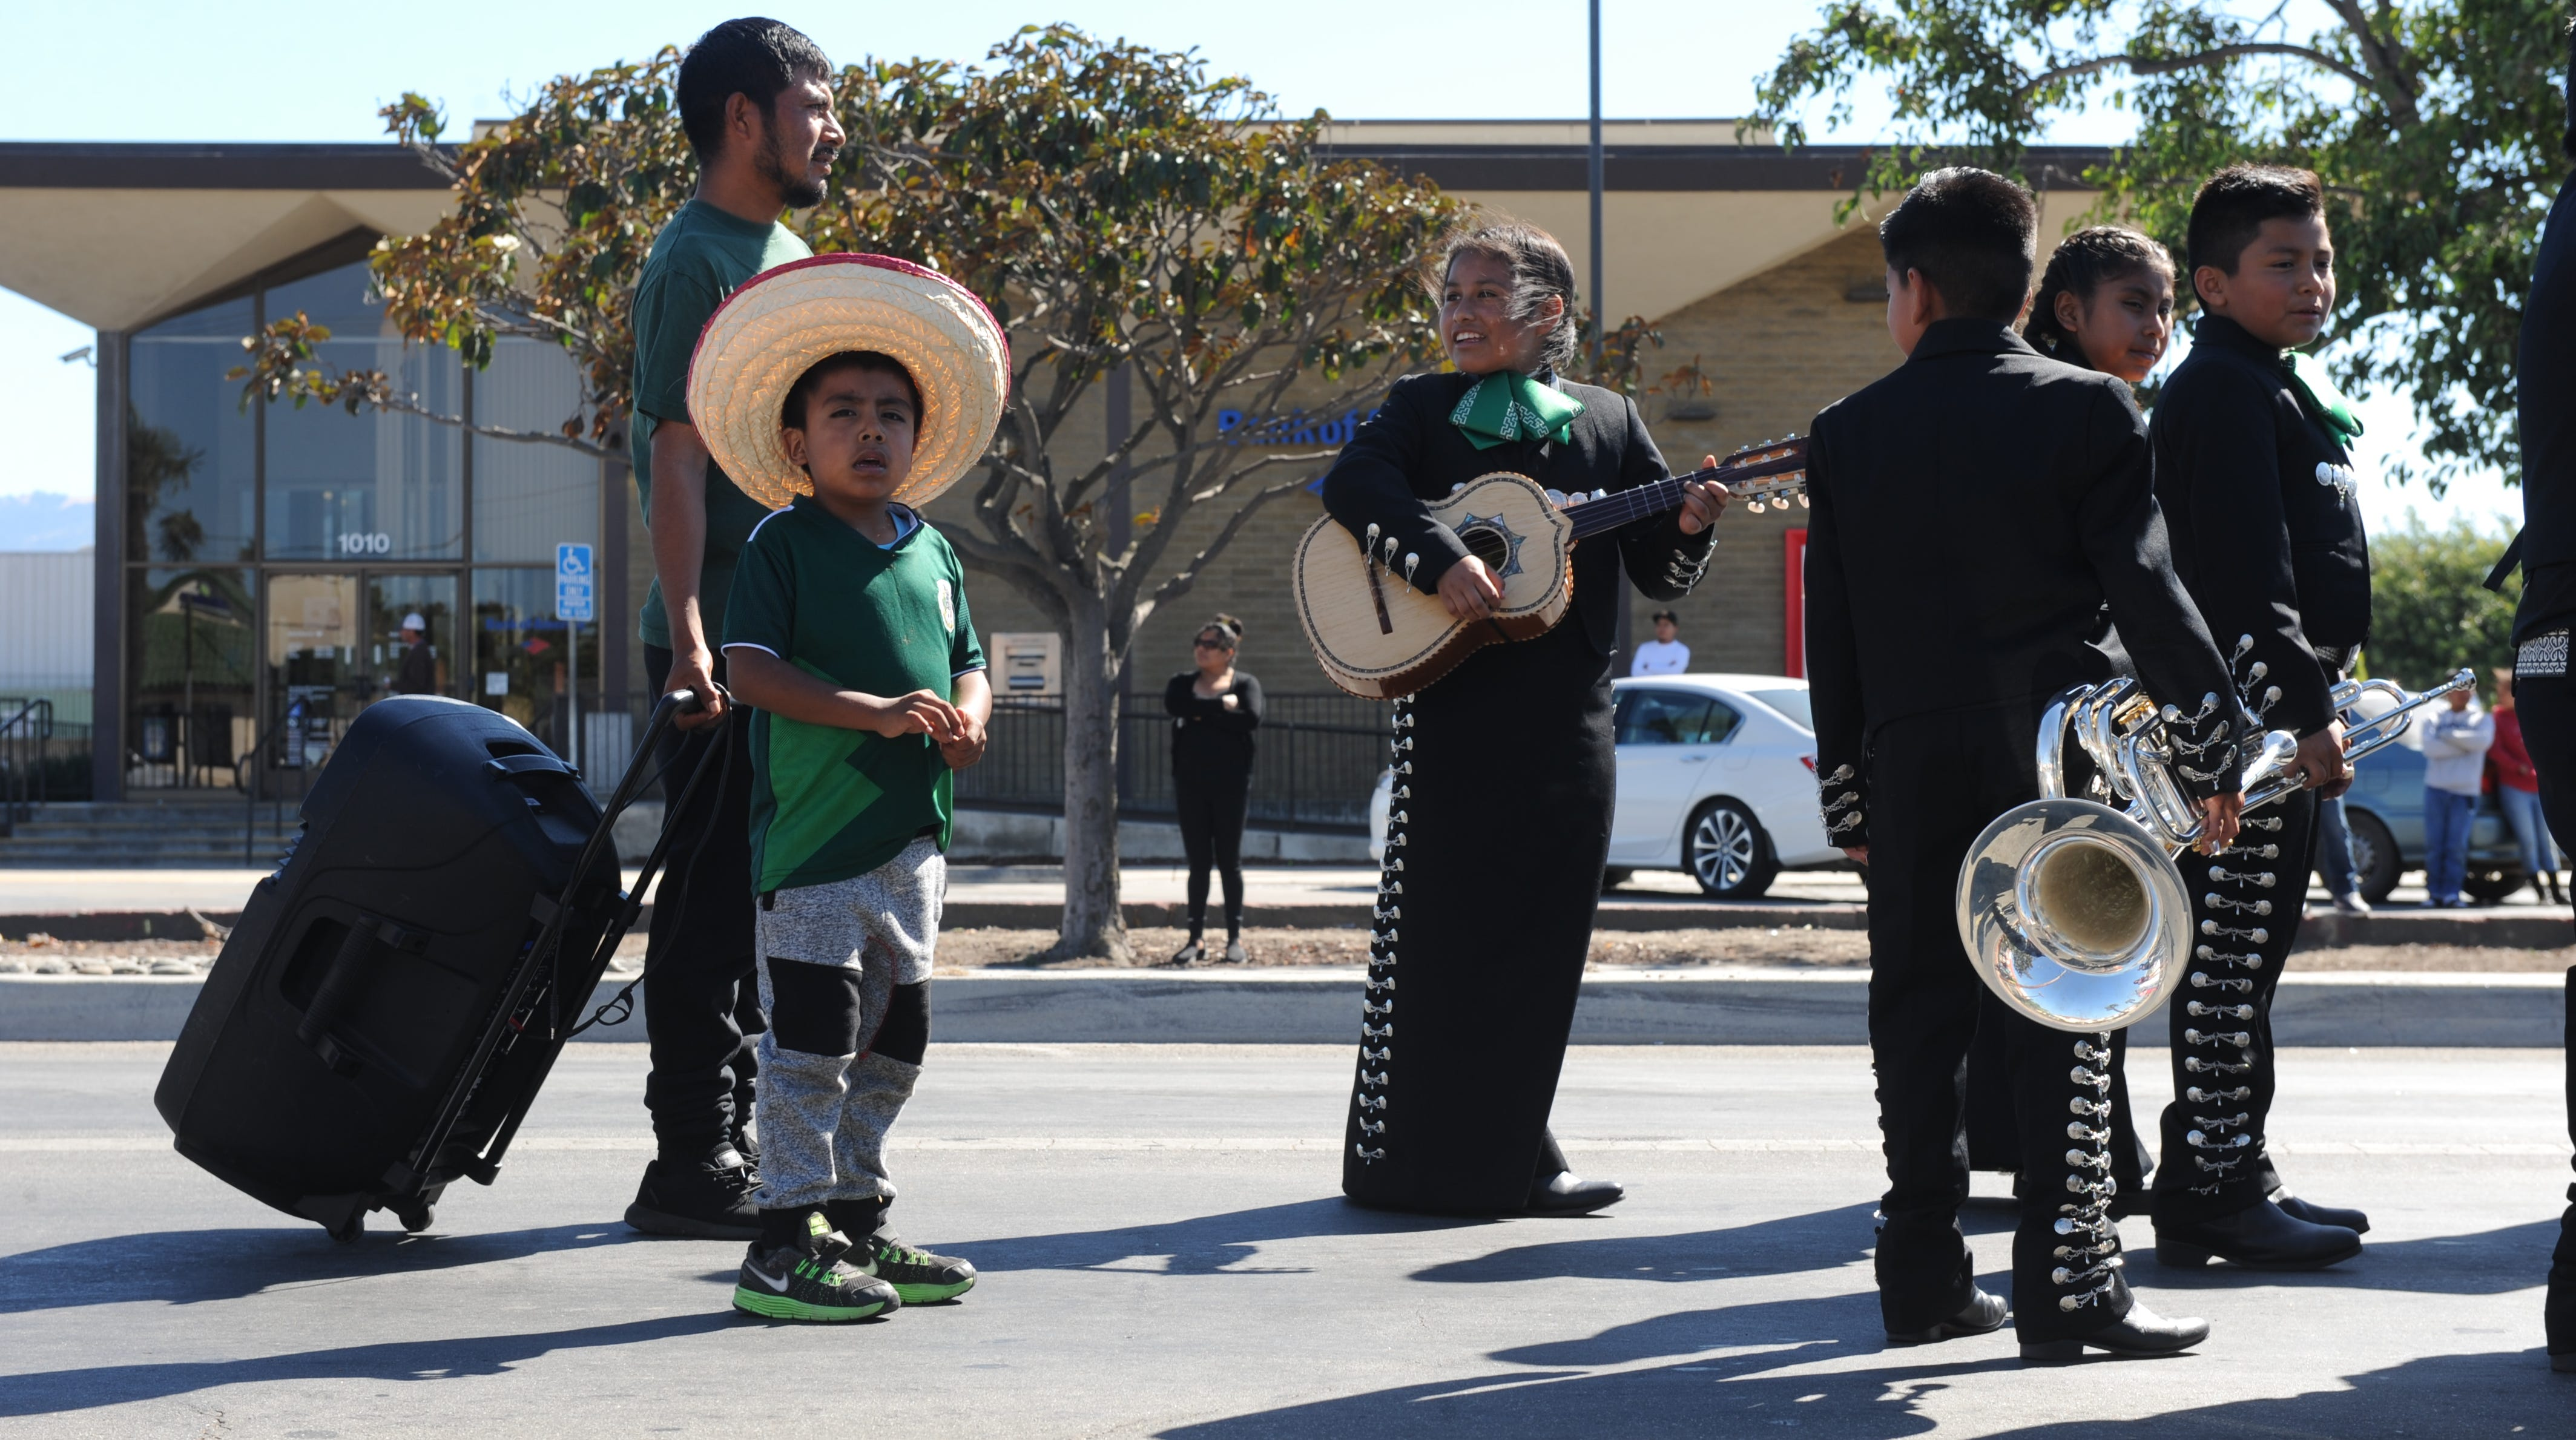 Salinas' El Grito parade took place in East Salinas where residents participated in the weekend-long festivities.